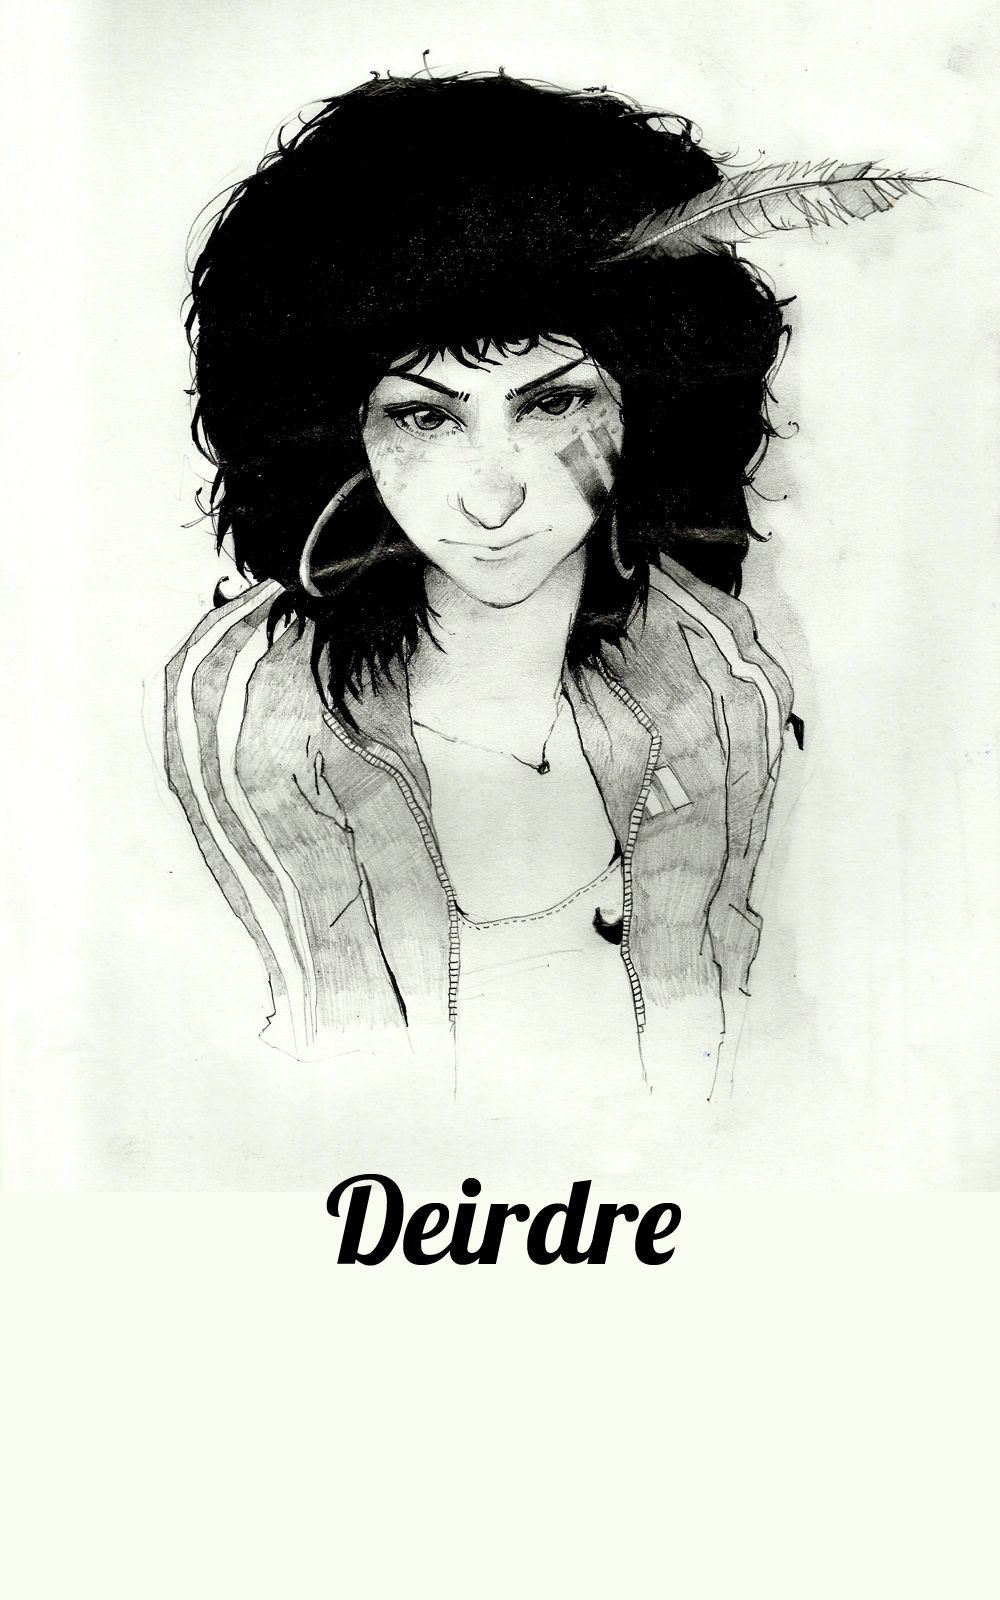 What Deirdre could look like today. Based on 'Dee' from the novel 'It's the stars will be our lamps.'